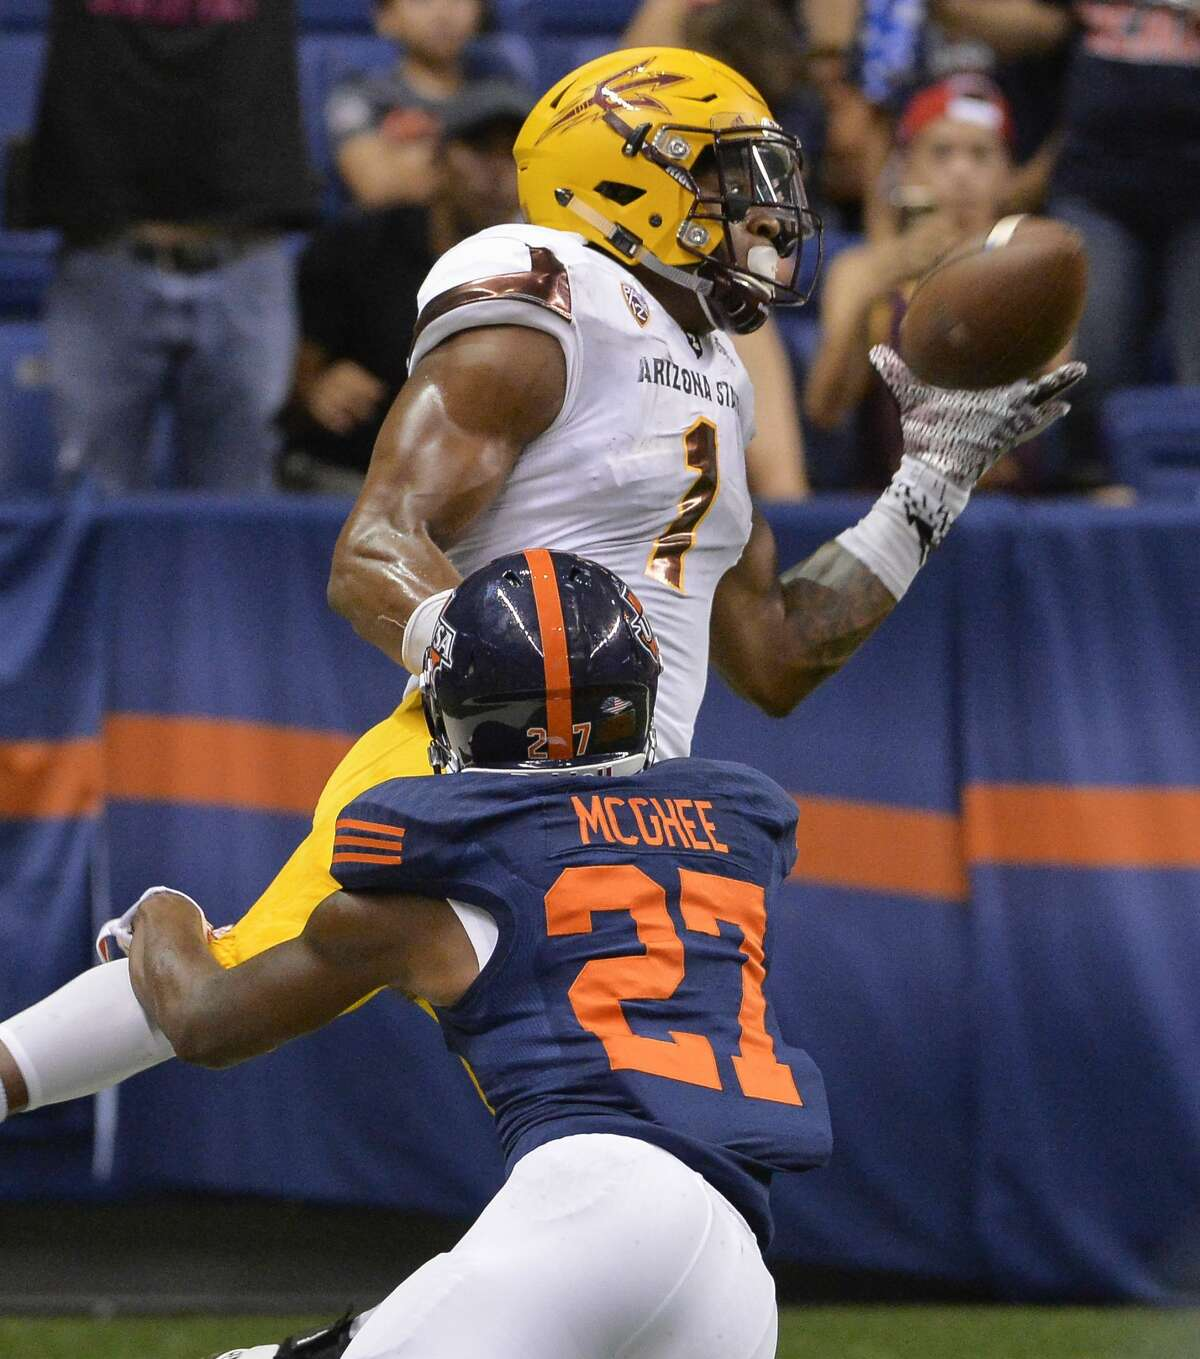 ROUND 1, NO. 21 OVERALL- WR N'KEAL HARRY, ARIZONA STATE As uncertainty continues to loom over Doug Baldwin's health, and the pre-existing need for more pass-catching depth, I'm inclined to believe the Seahawks will use their top pick on a wide receiver -- not an edge player. At the NFL league meetings in Phoenix, coach Pete Carroll expressed more optimism about his pass rush than outside speculation would suggest. He's excited about what 2018 rookie Jacob Martin, who had the three sacks last season, can do in Year 2. And Seattle announced Thursday it had signed two defensive ends, highlighted by a familiar face in Cassius Marsh. The Seahawks appear seriously interested in N'Keal Harry, as the NFL Network reported that they're having him in for a visit. He checks several boxes. I outlined them earlier this week: a big, physical receiver (6 feet 2 and 228 pounds) who thrives in contest situations. He was extremely productive in Tempe, Ariz. He posted consecutive 1,000-plus yard seasons and was named a first-team All-Pac 12 selection in back-to-back years.